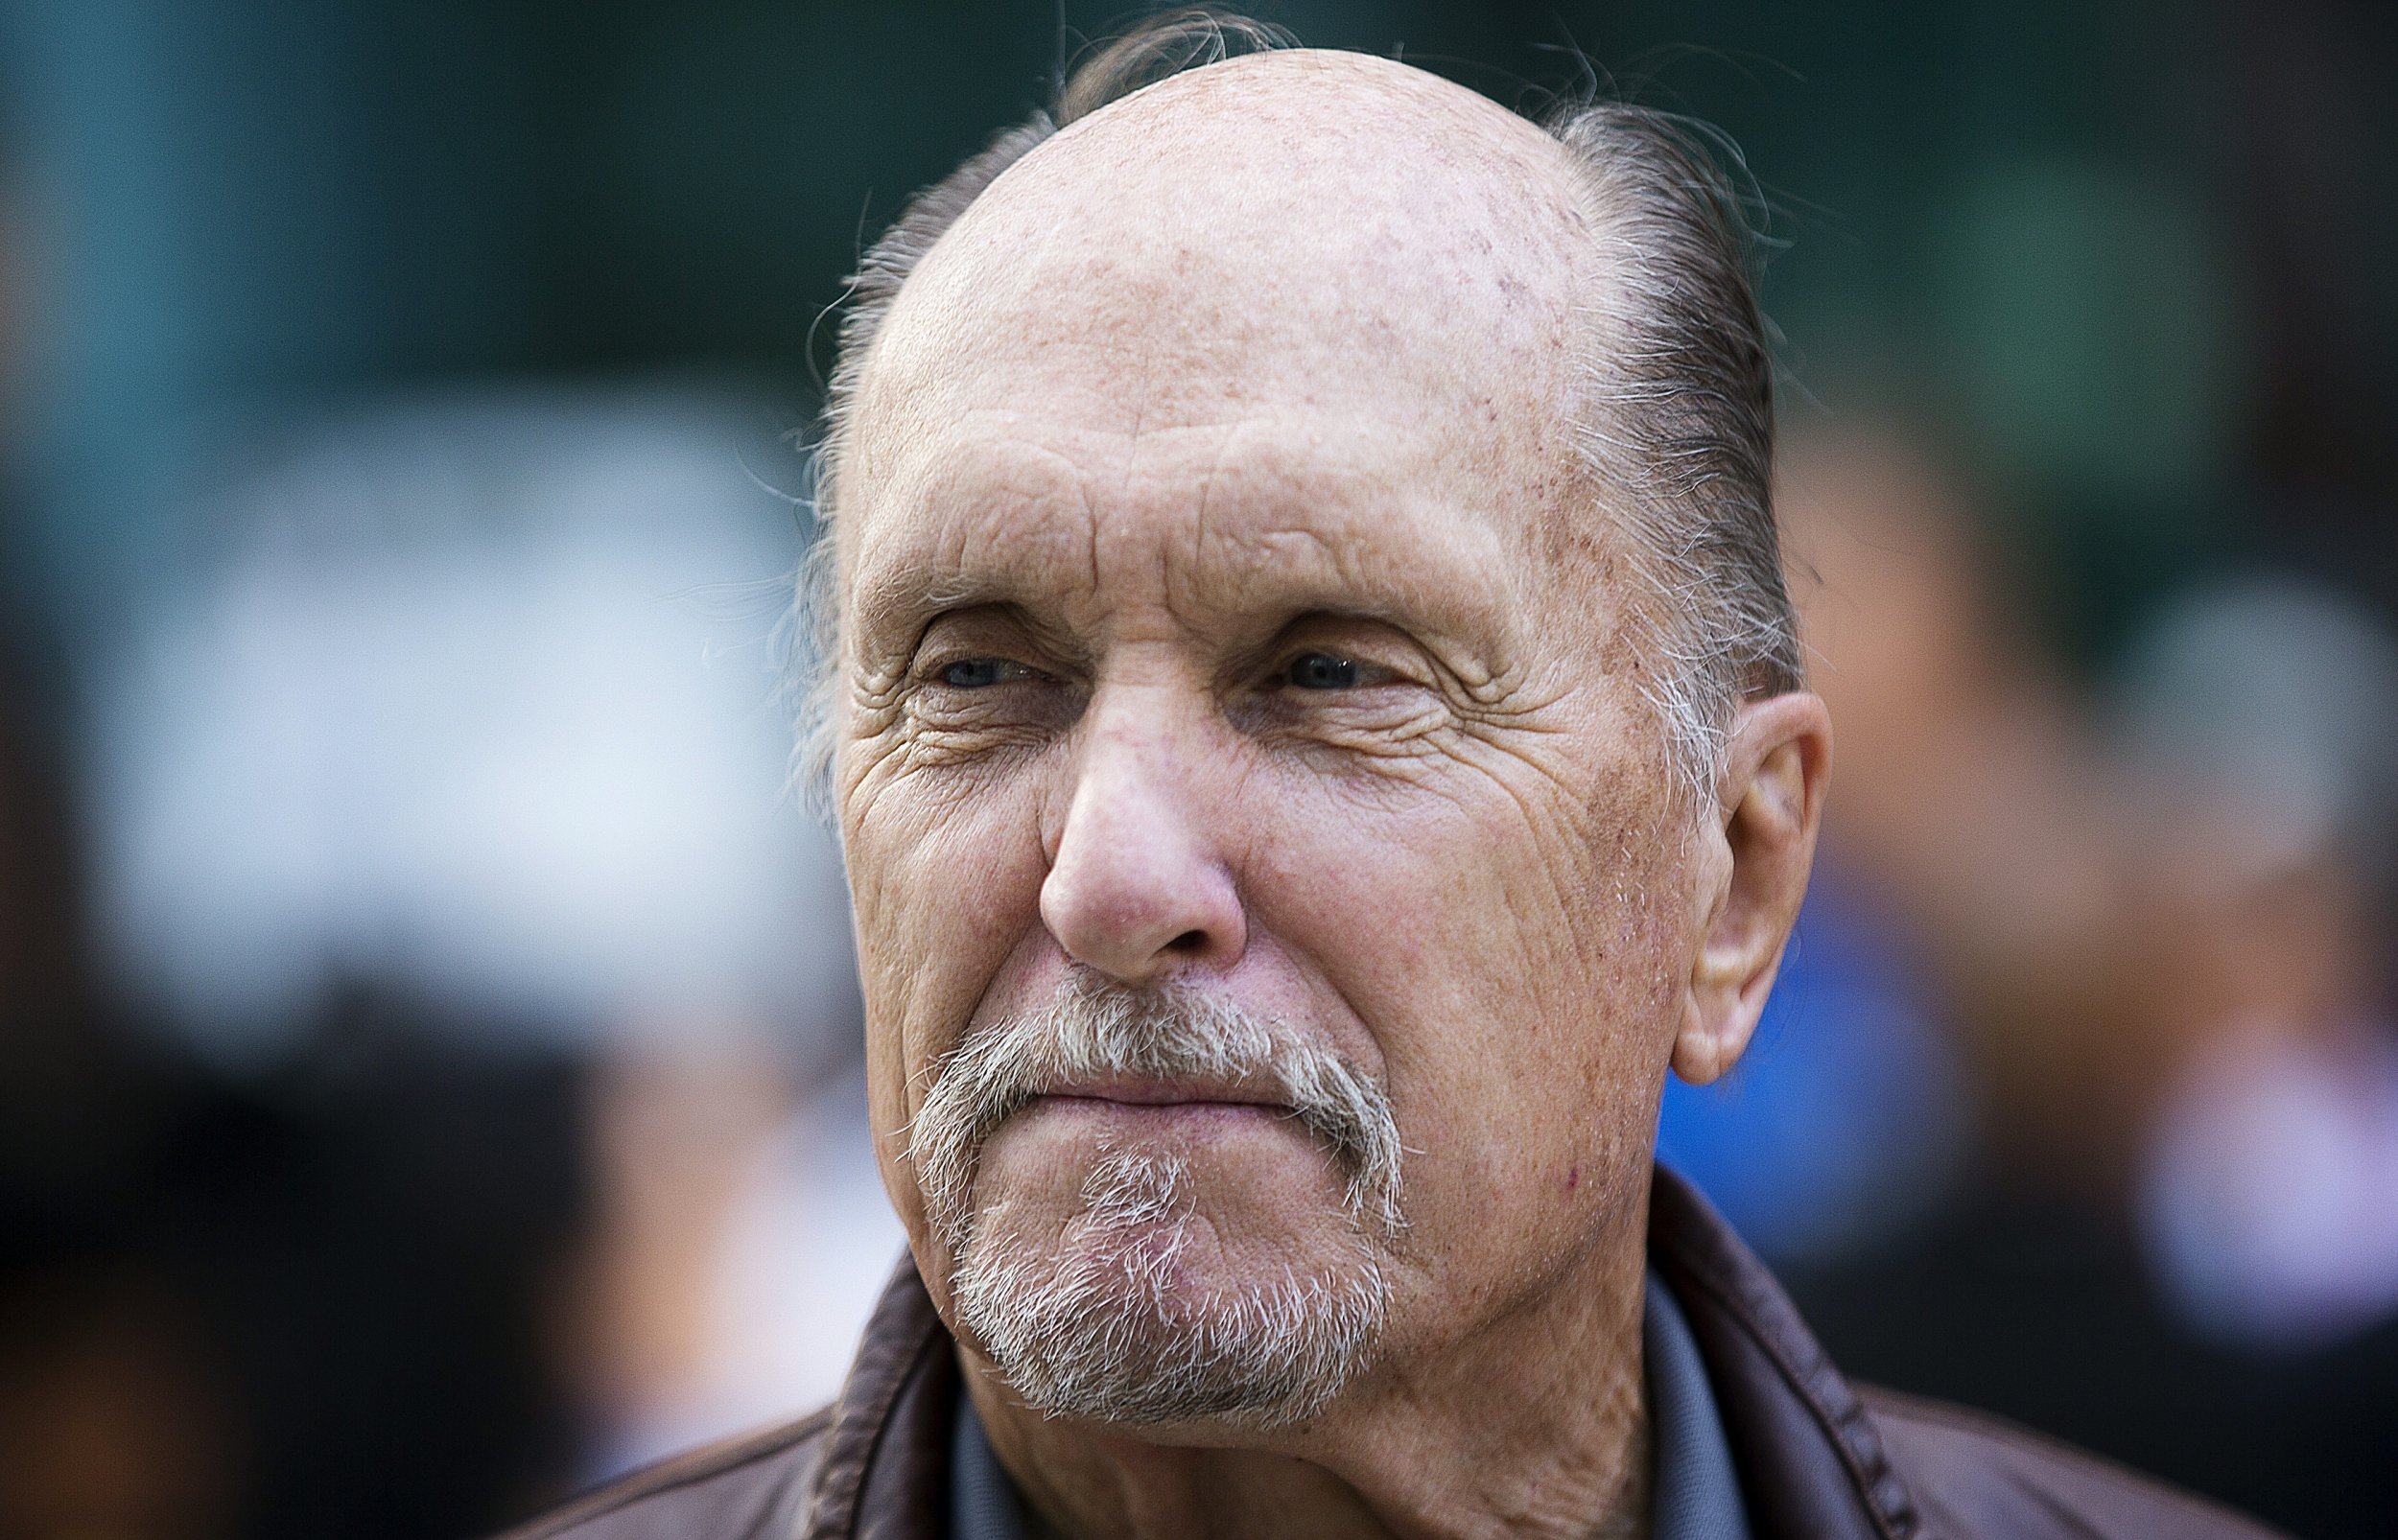 robert duvall goldmanrobert duvall young, robert duvall height, robert duvall oscar, robert duvall son, robert duvall movie, robert duvall linkedin, robert duvall instagram, robert duvall preacher, robert duvall 2017, robert duvall goldman, robert duvall official website, robert duvall net worth, robert duvall death, robert duvall apocalypse now, robert duvall godfather, robert duvall stalin, robert duvall 2016, robert duvall napalm in the morning, robert duvall filmography